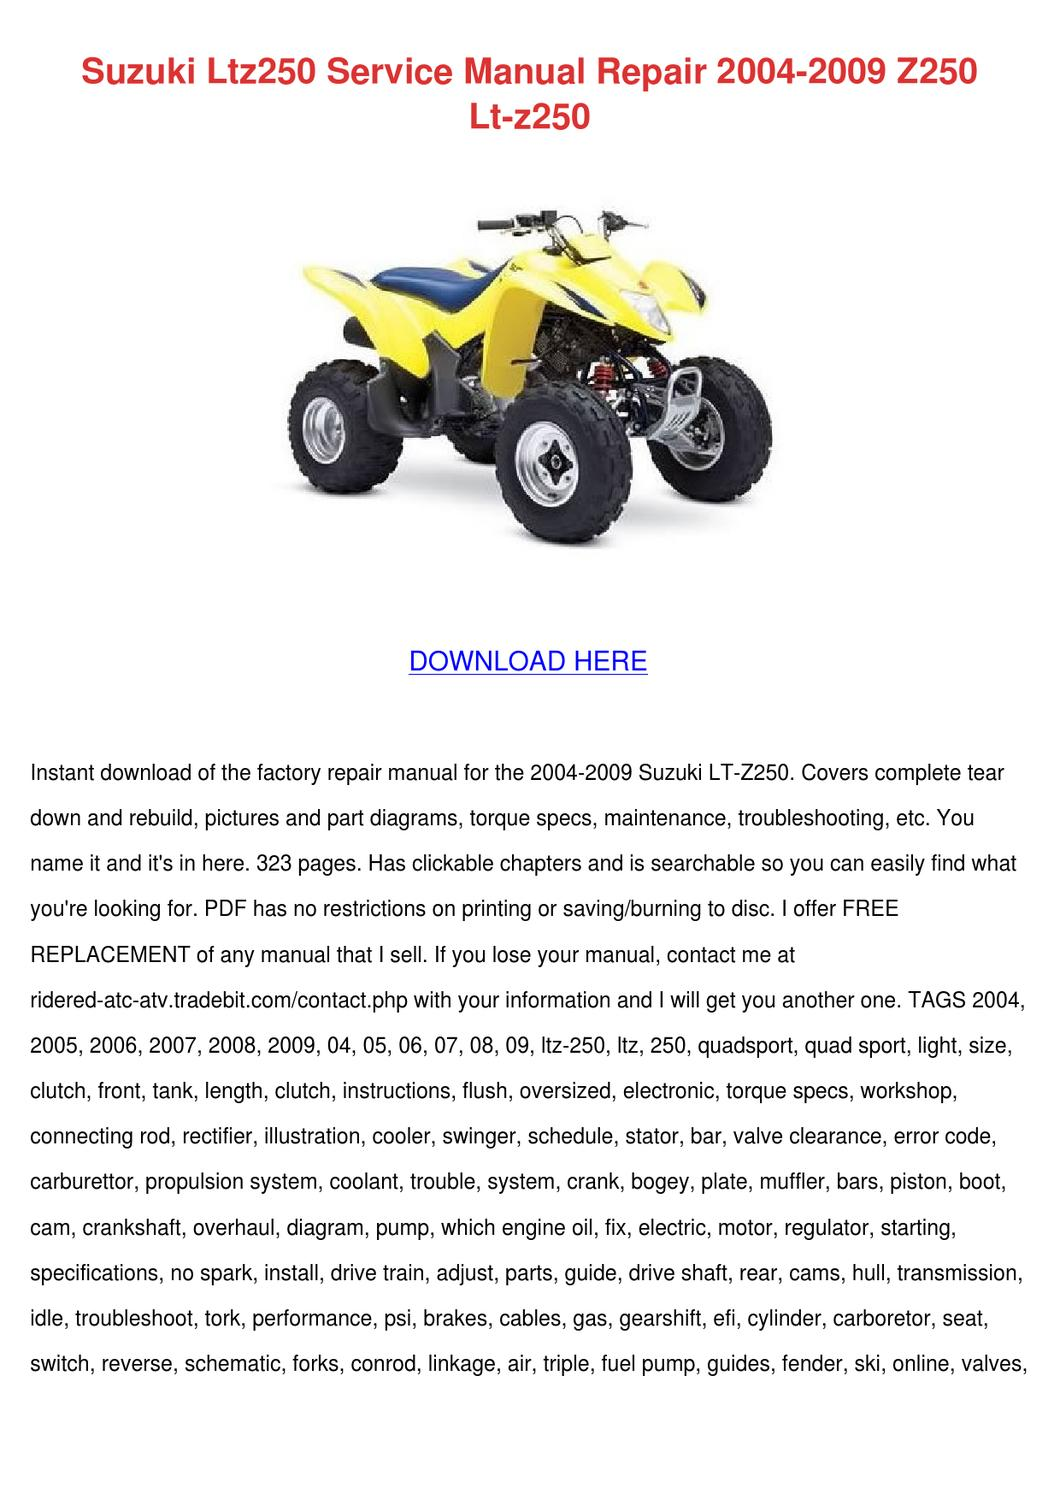 Suzuki Ltz250 Service Manual Repair 2004 2009 by Delphine Doehring - issuu